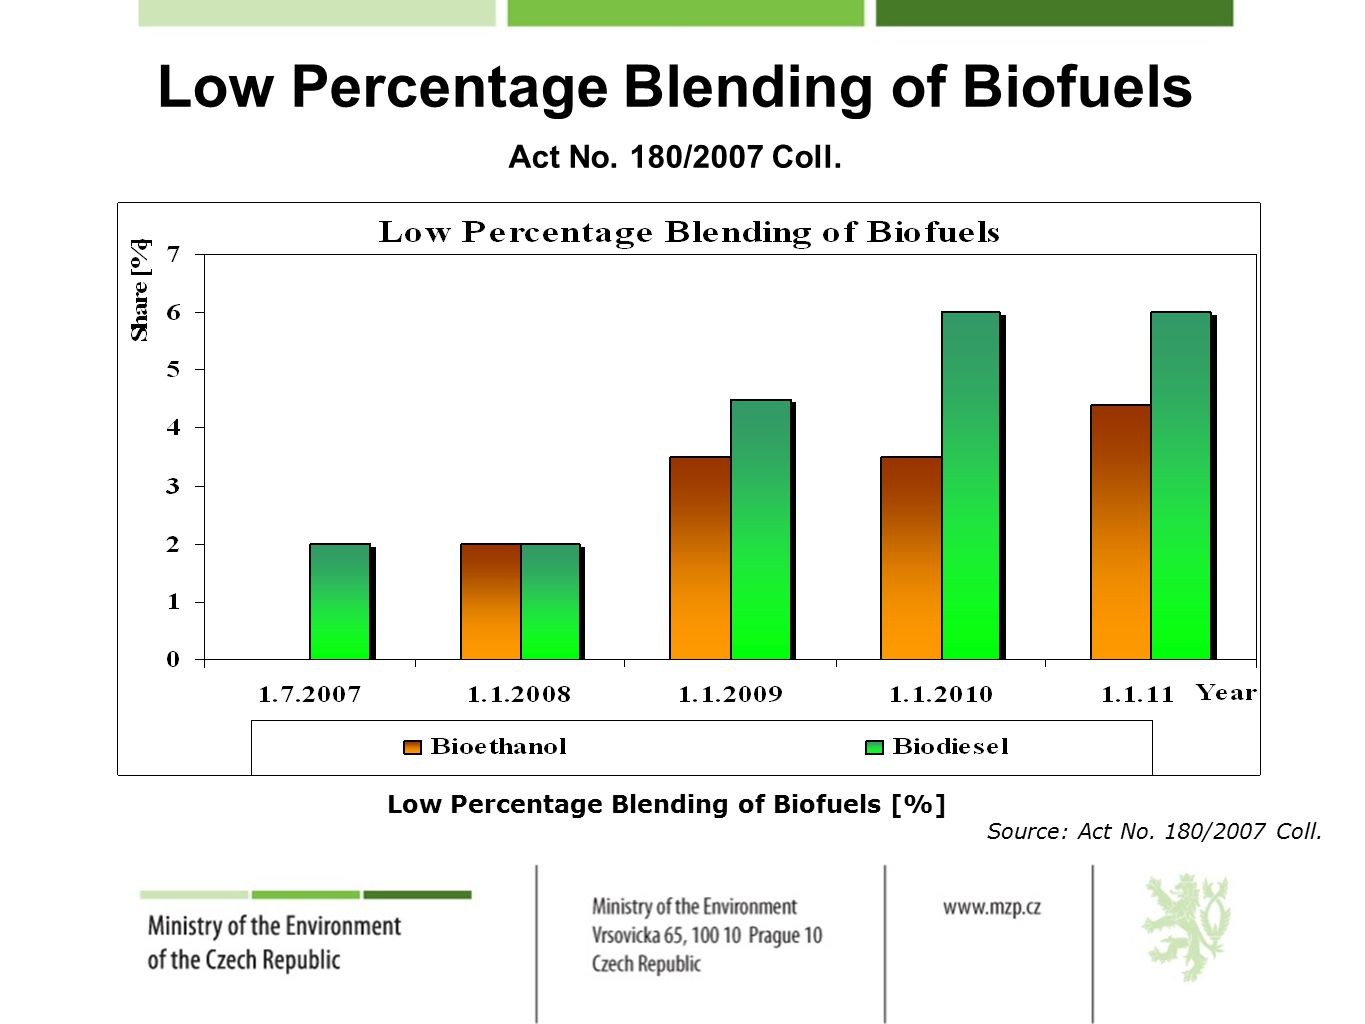 Low Percentage Blending of Biofuels Act No. 180/2007 Coll.